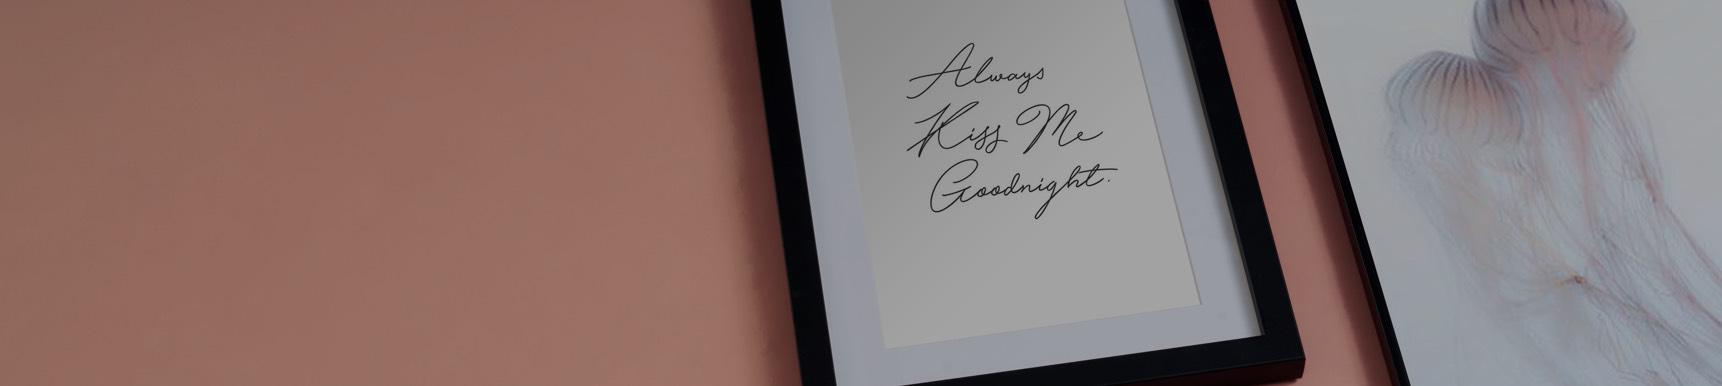 Always kiss me goodnight poster in a frame and illustrations with jellyfish